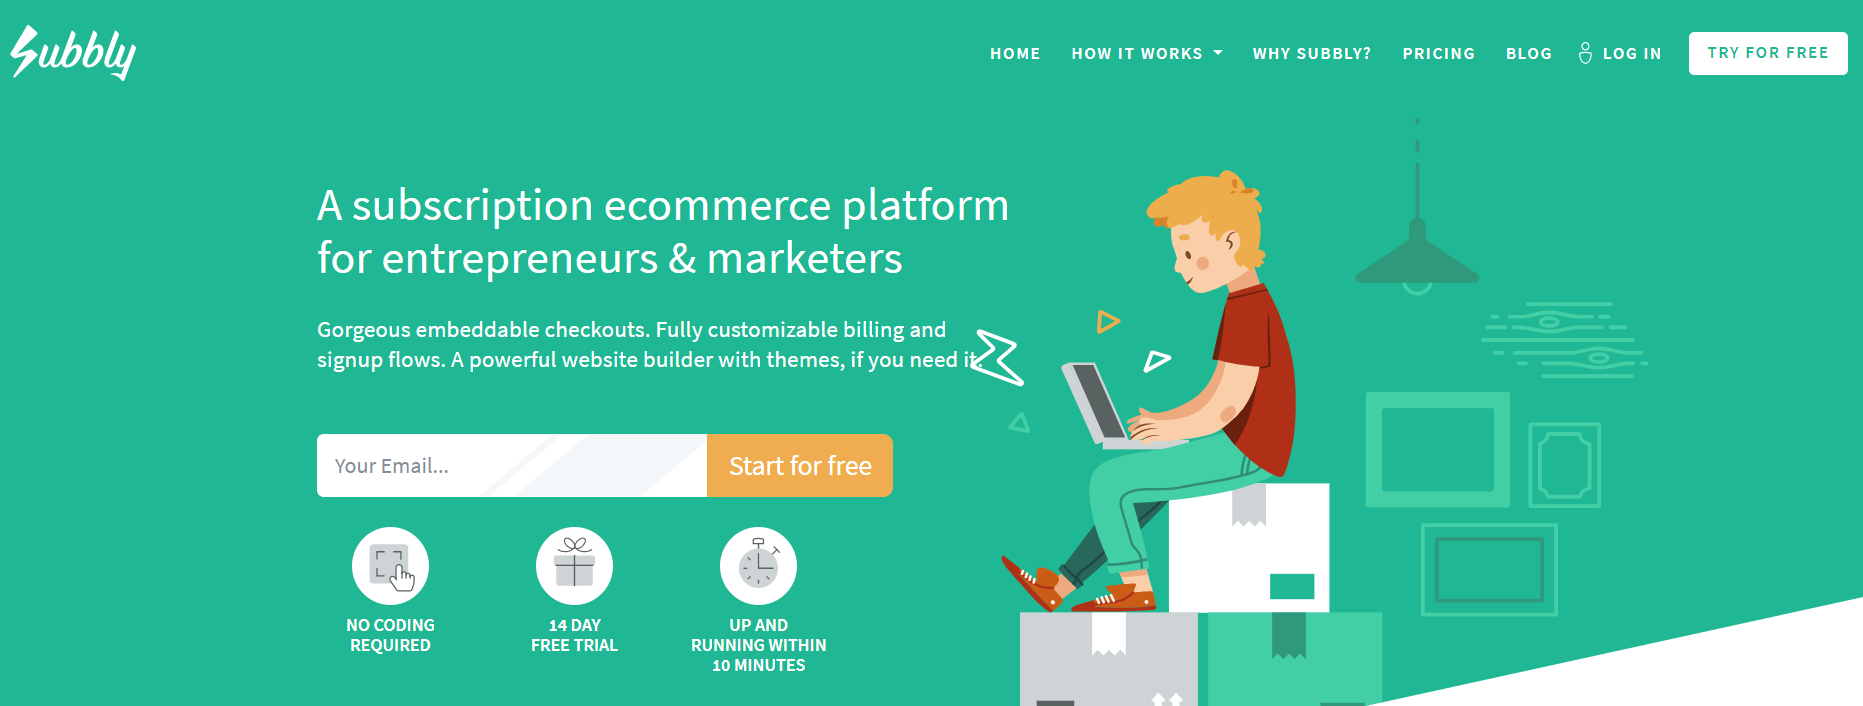 Subbly Review- The Subscription Ecommerce Platform